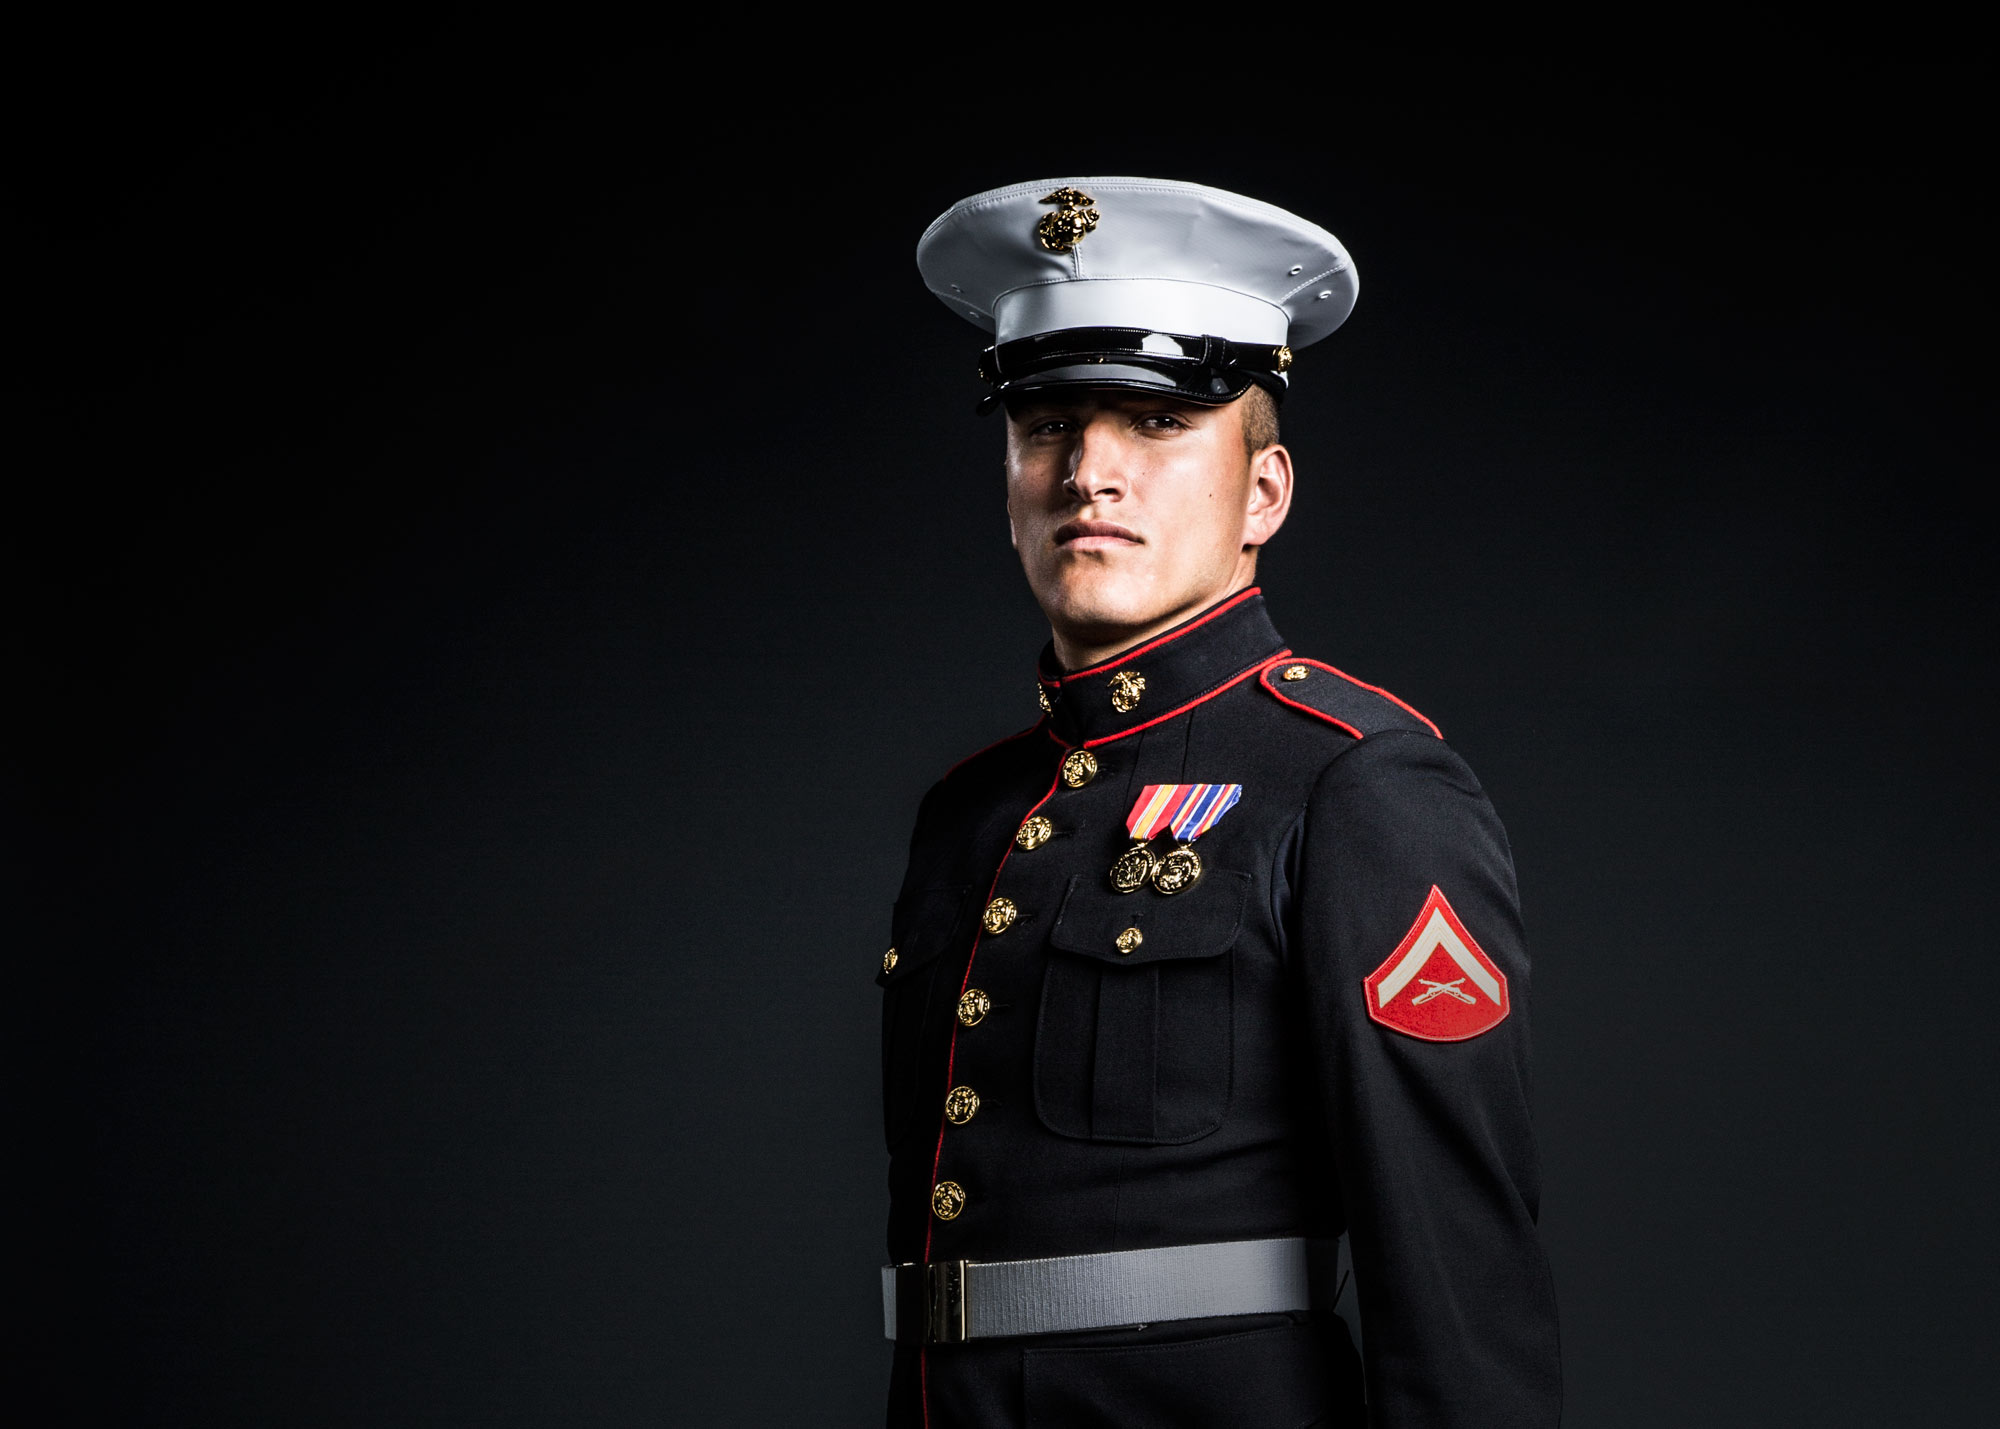 8th_I_Portraits_DressBlues_LCPL_Serrano_HA_Male_00120